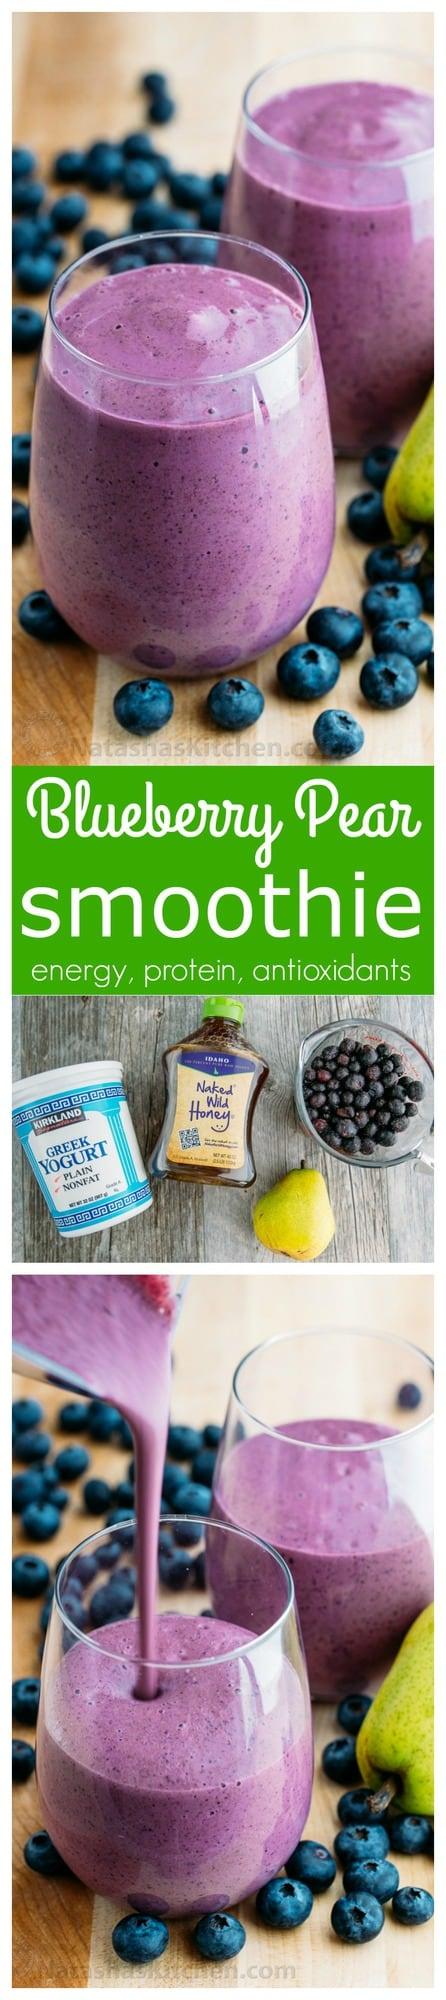 This blueberry pear smoothie is a great breakfast smoothie! It's energizing and packs a lot of protein. This pear smoothie is healthy, easy (with 4 ingredients) and so tasty!